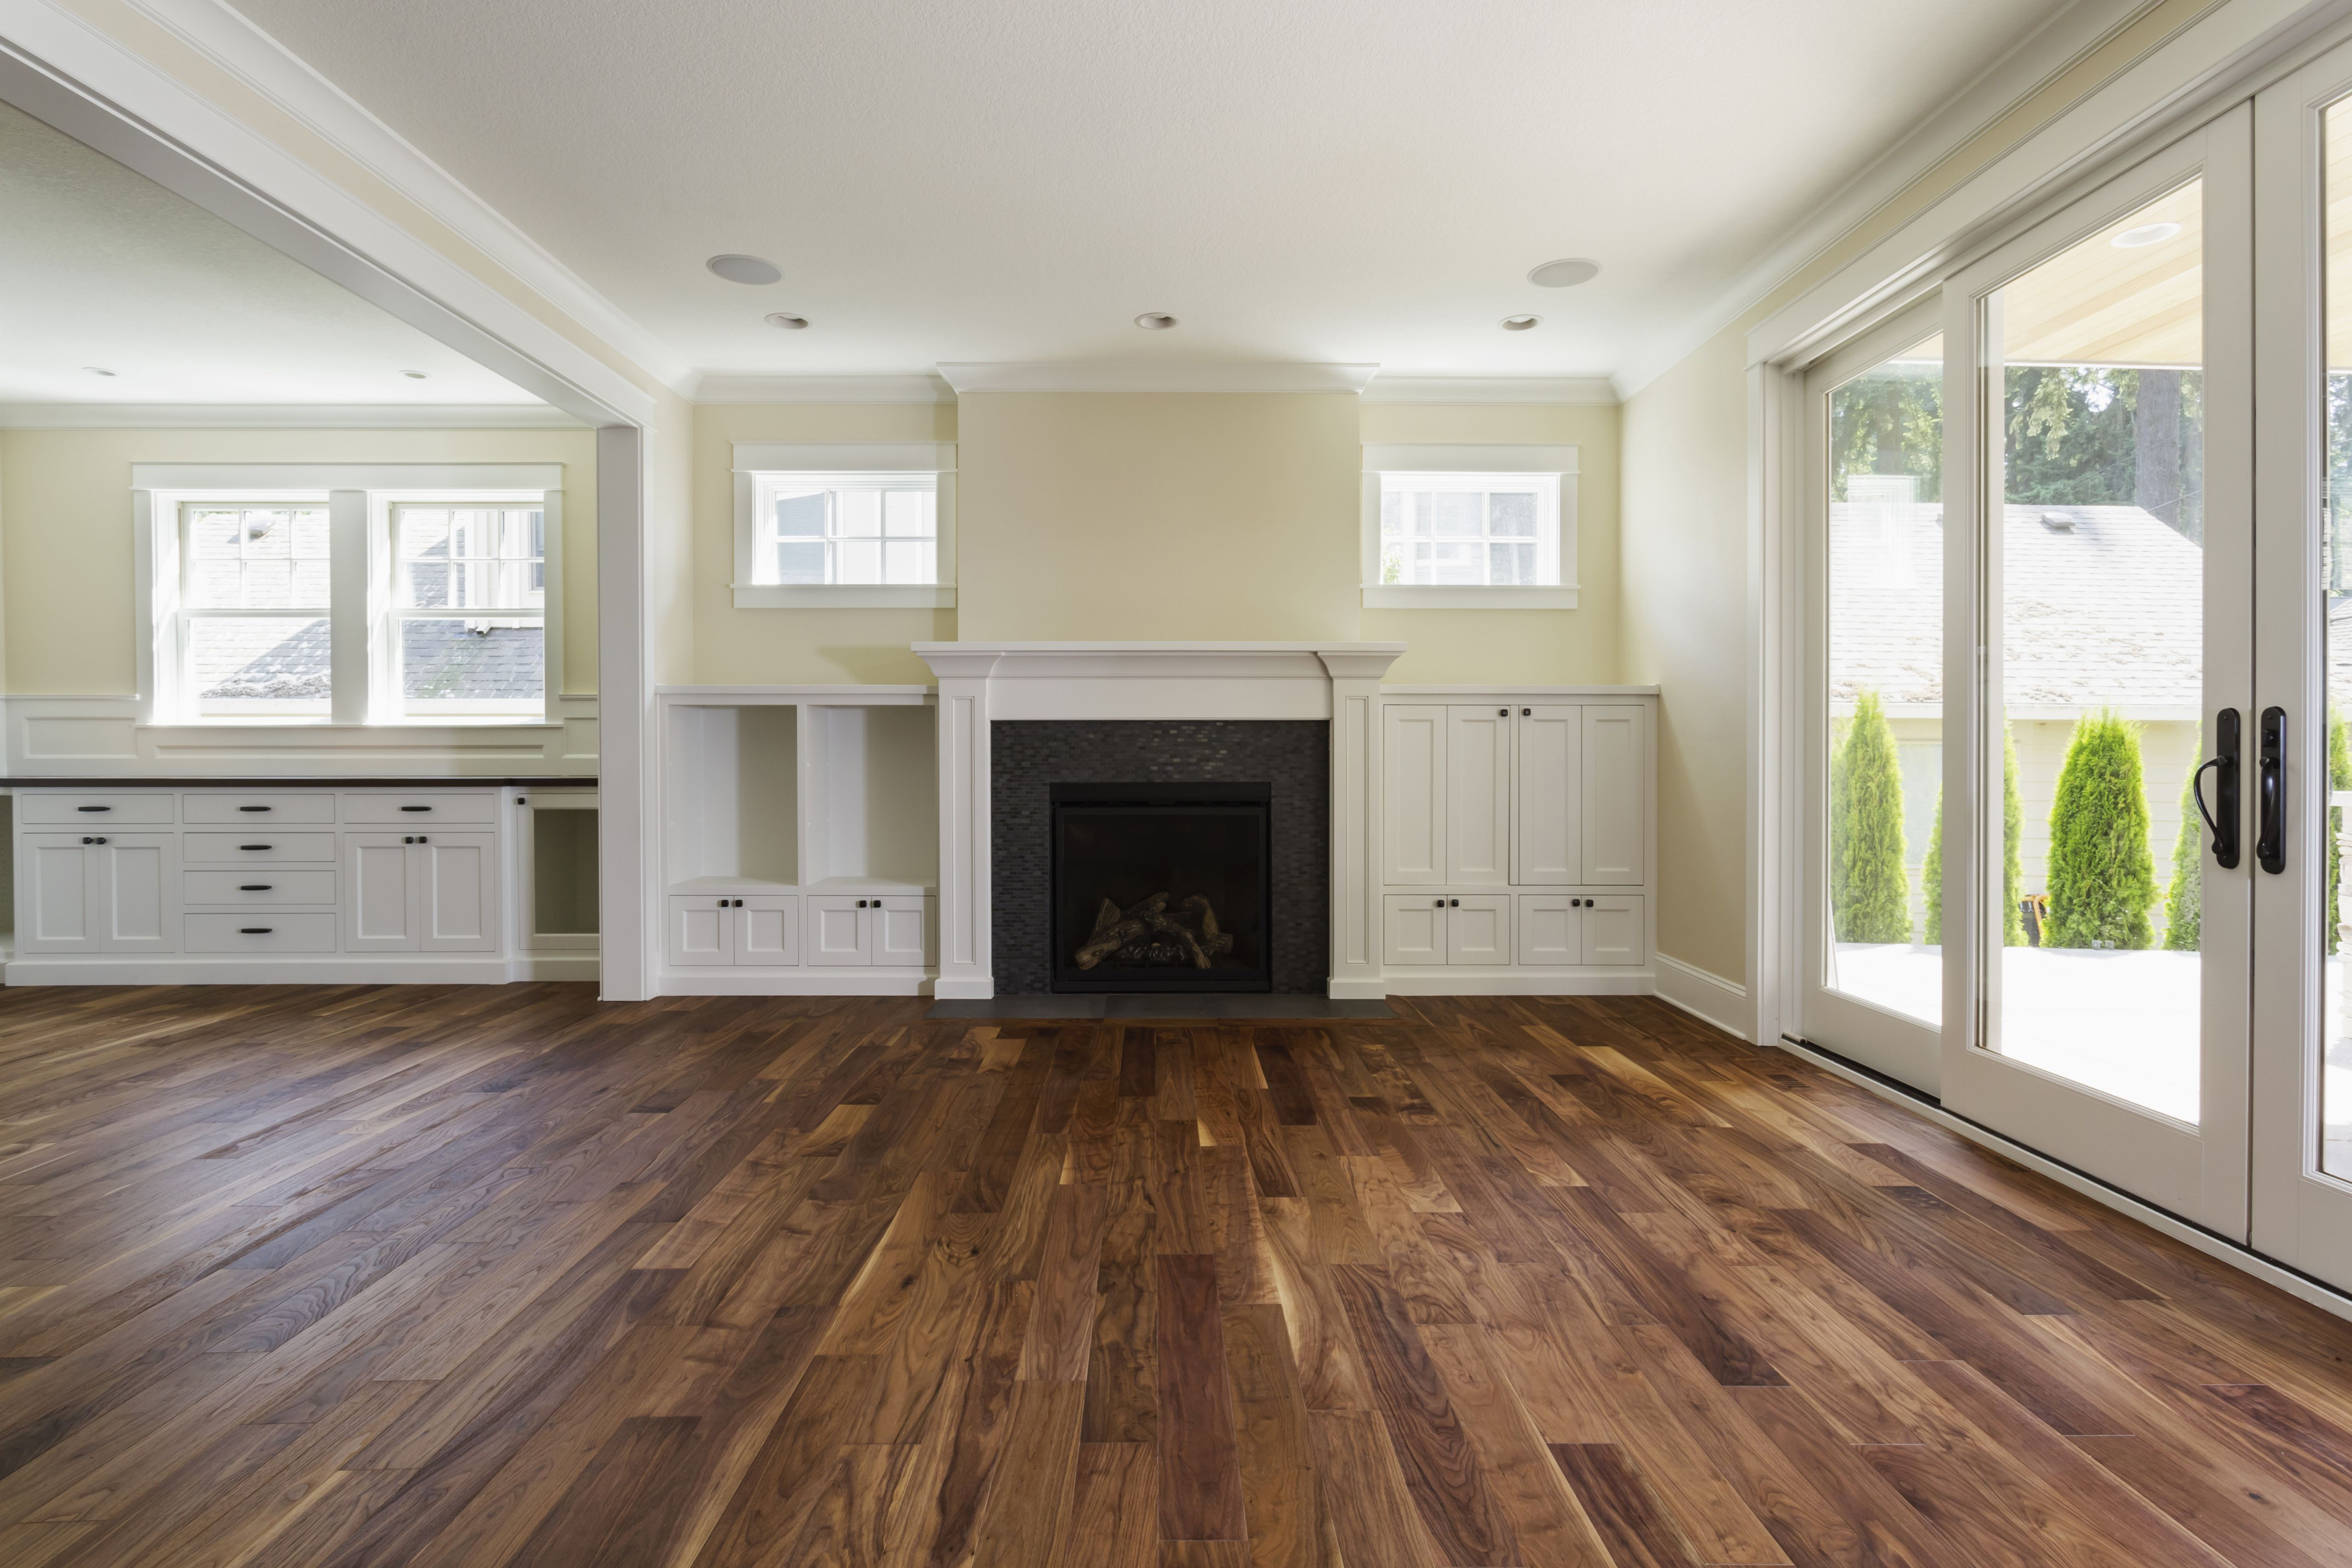 how to refinish maple hardwood floors of the pros and cons of prefinished hardwood flooring in fireplace and built in shelves in living room 482143011 57bef8e33df78cc16e035397